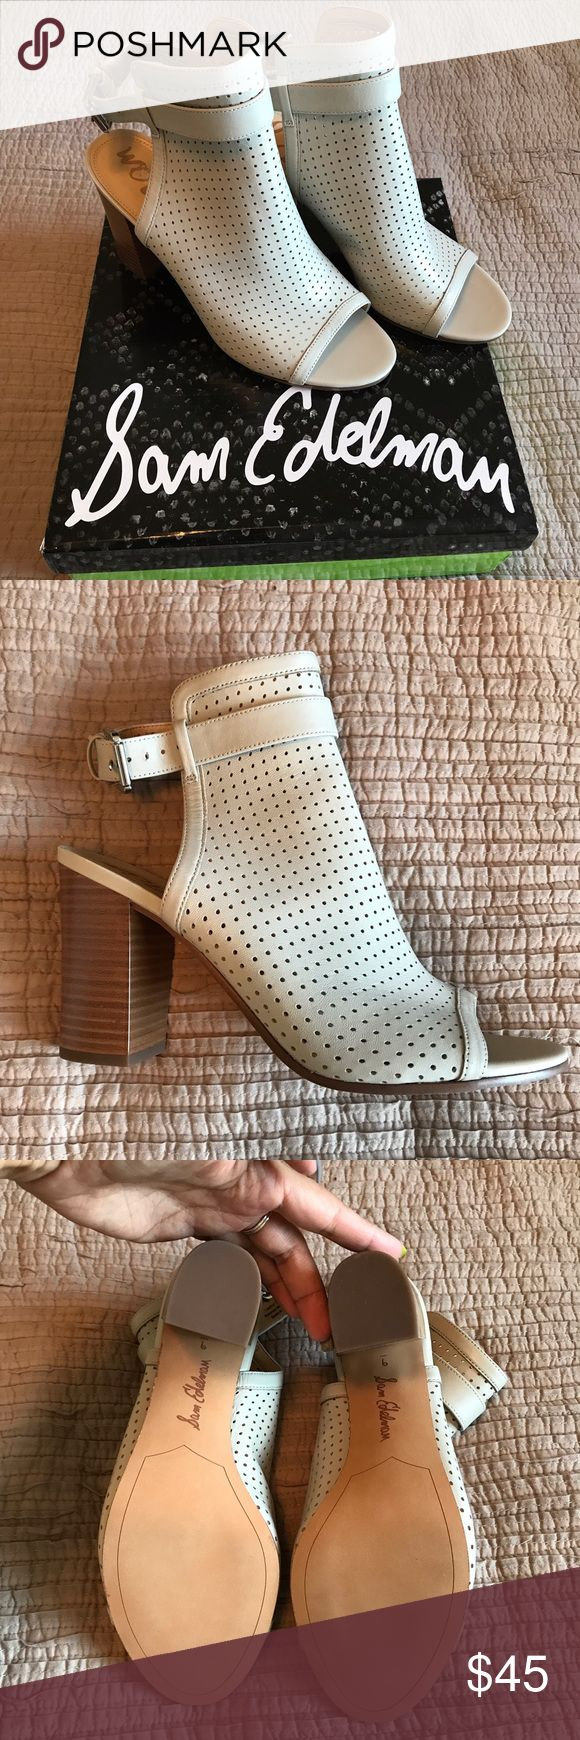 """Size 9 Sam Edelman open toe boot NEW Peep toe, light tan/cream color laser cut design on this gorgeous heeled bootie. Reposh because they ended up being a little too big on me, but they are amazing!! Almost 4"""" heel. Sam Edelman Shoes Heeled Boots"""